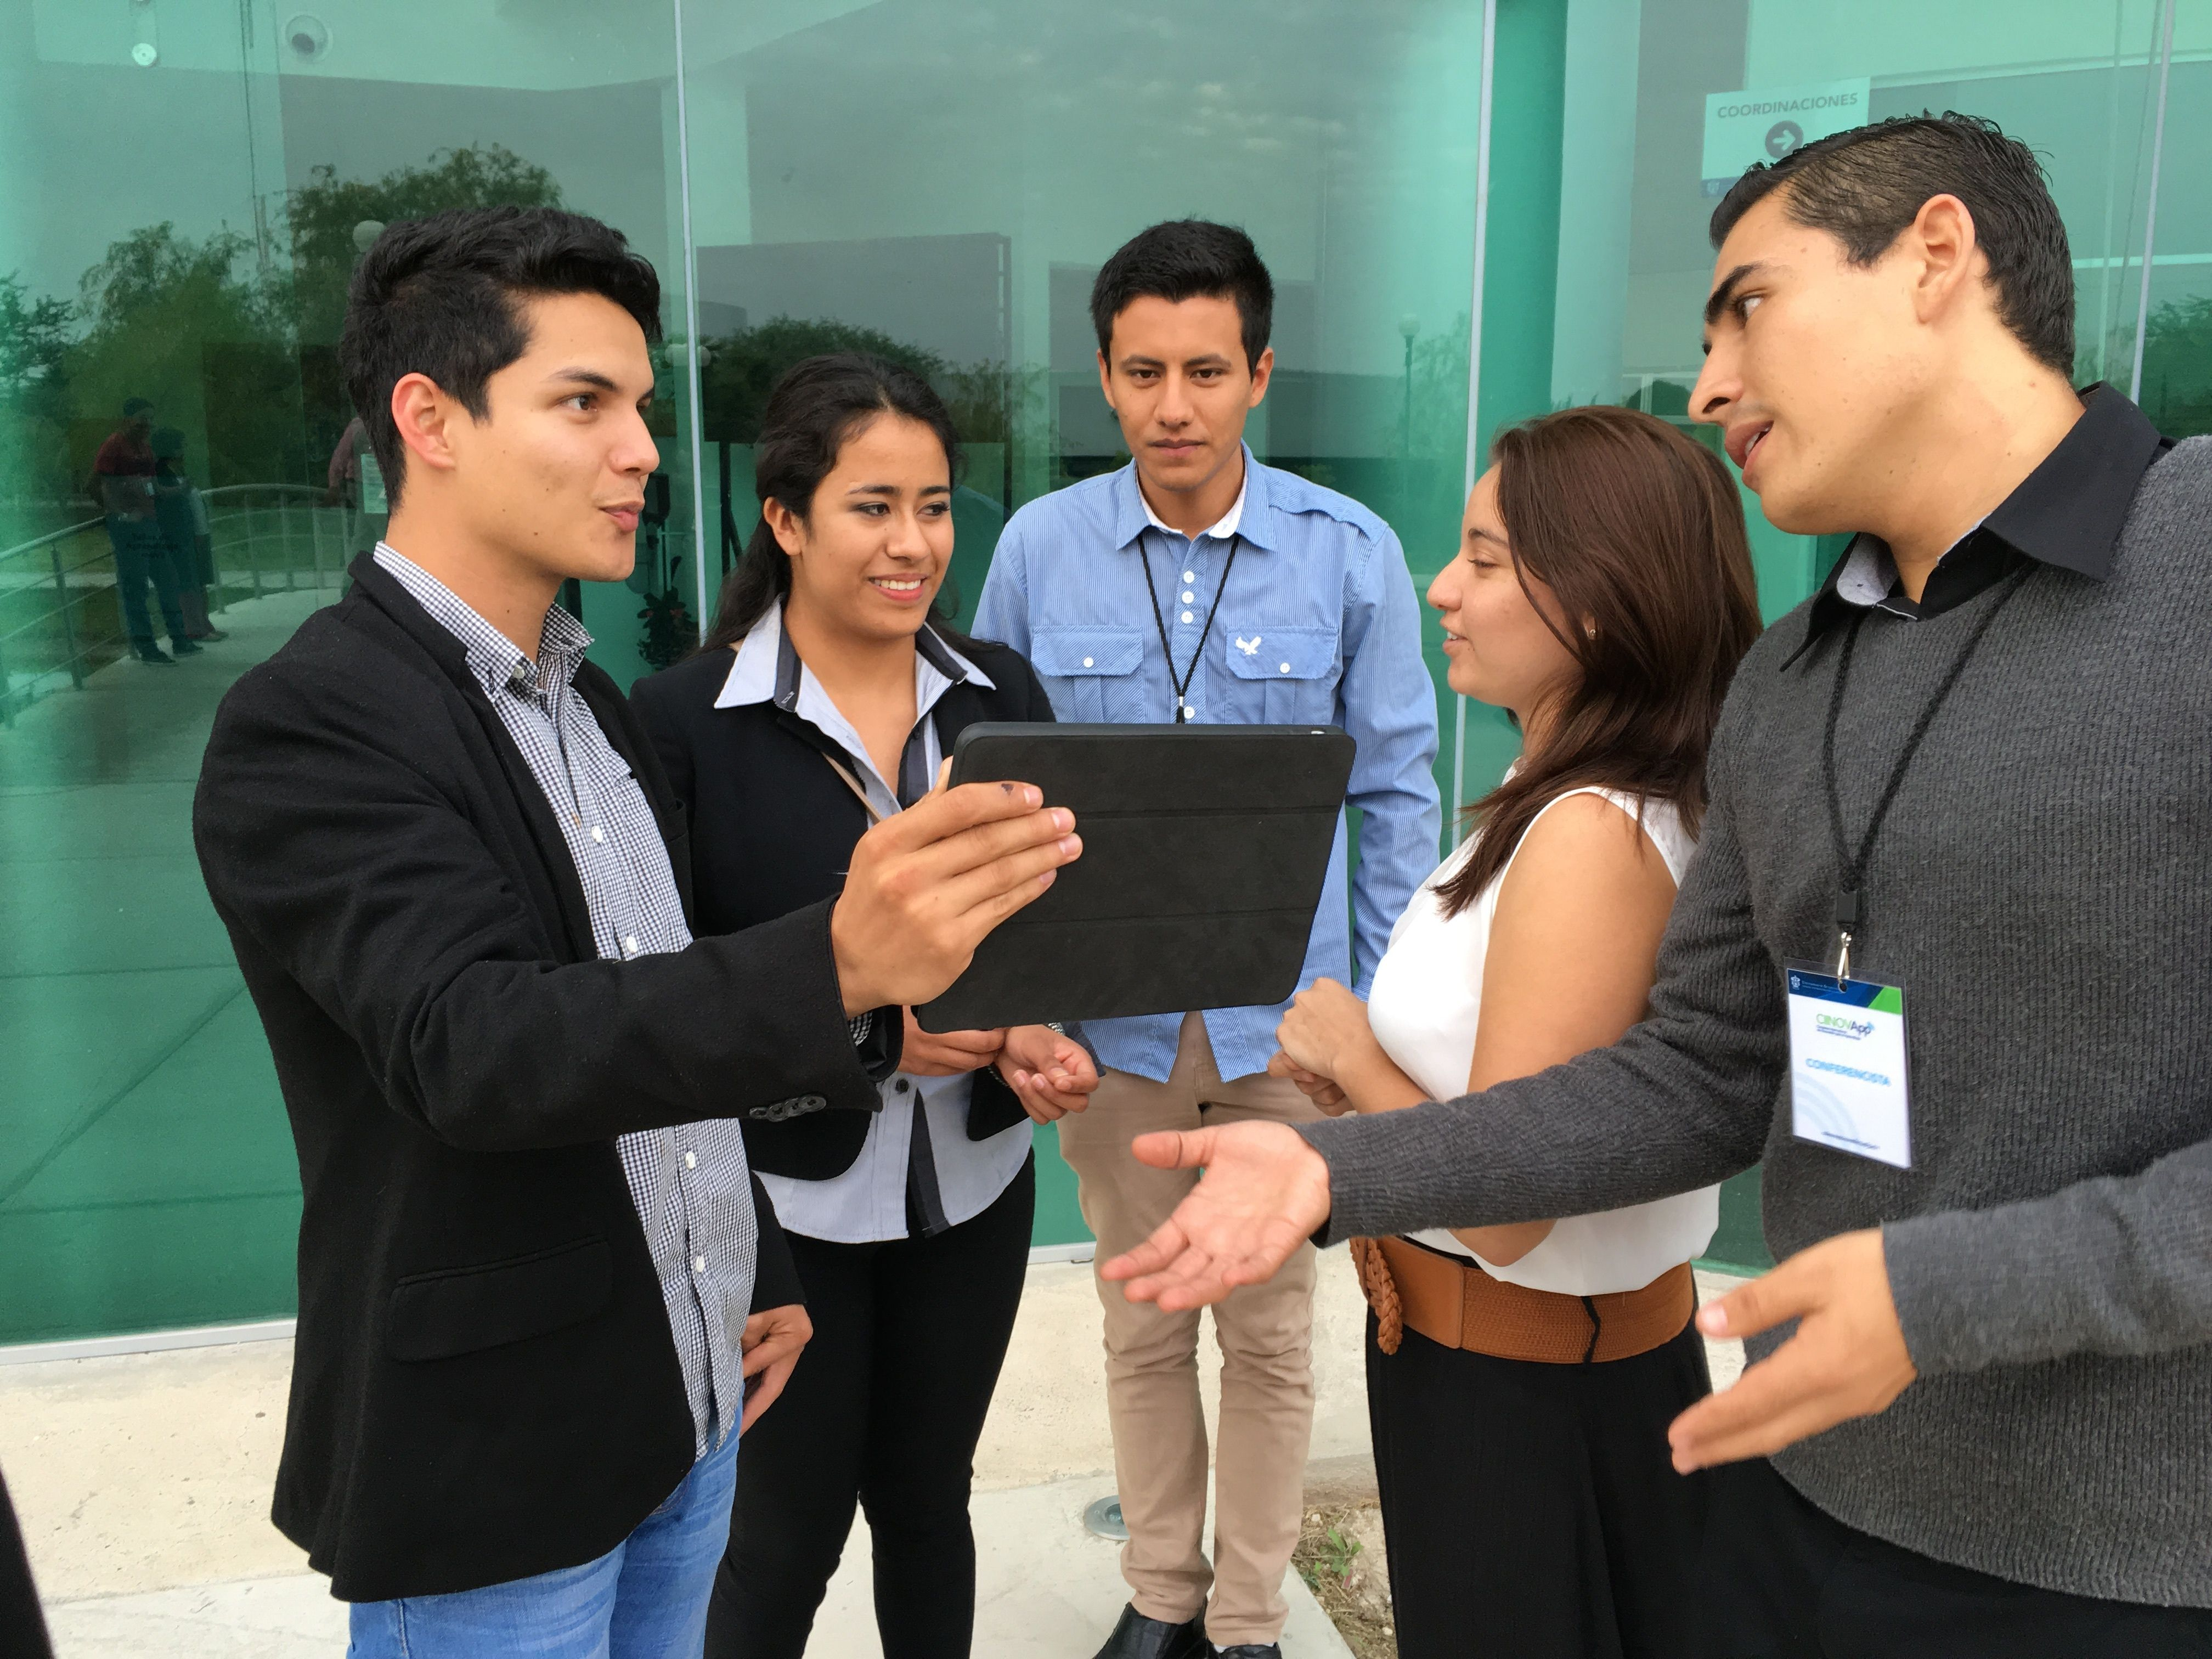 business comunication Business english communication skills from university of washington this specialization is designed to teach you to communicate effectively in english in professional contexts.